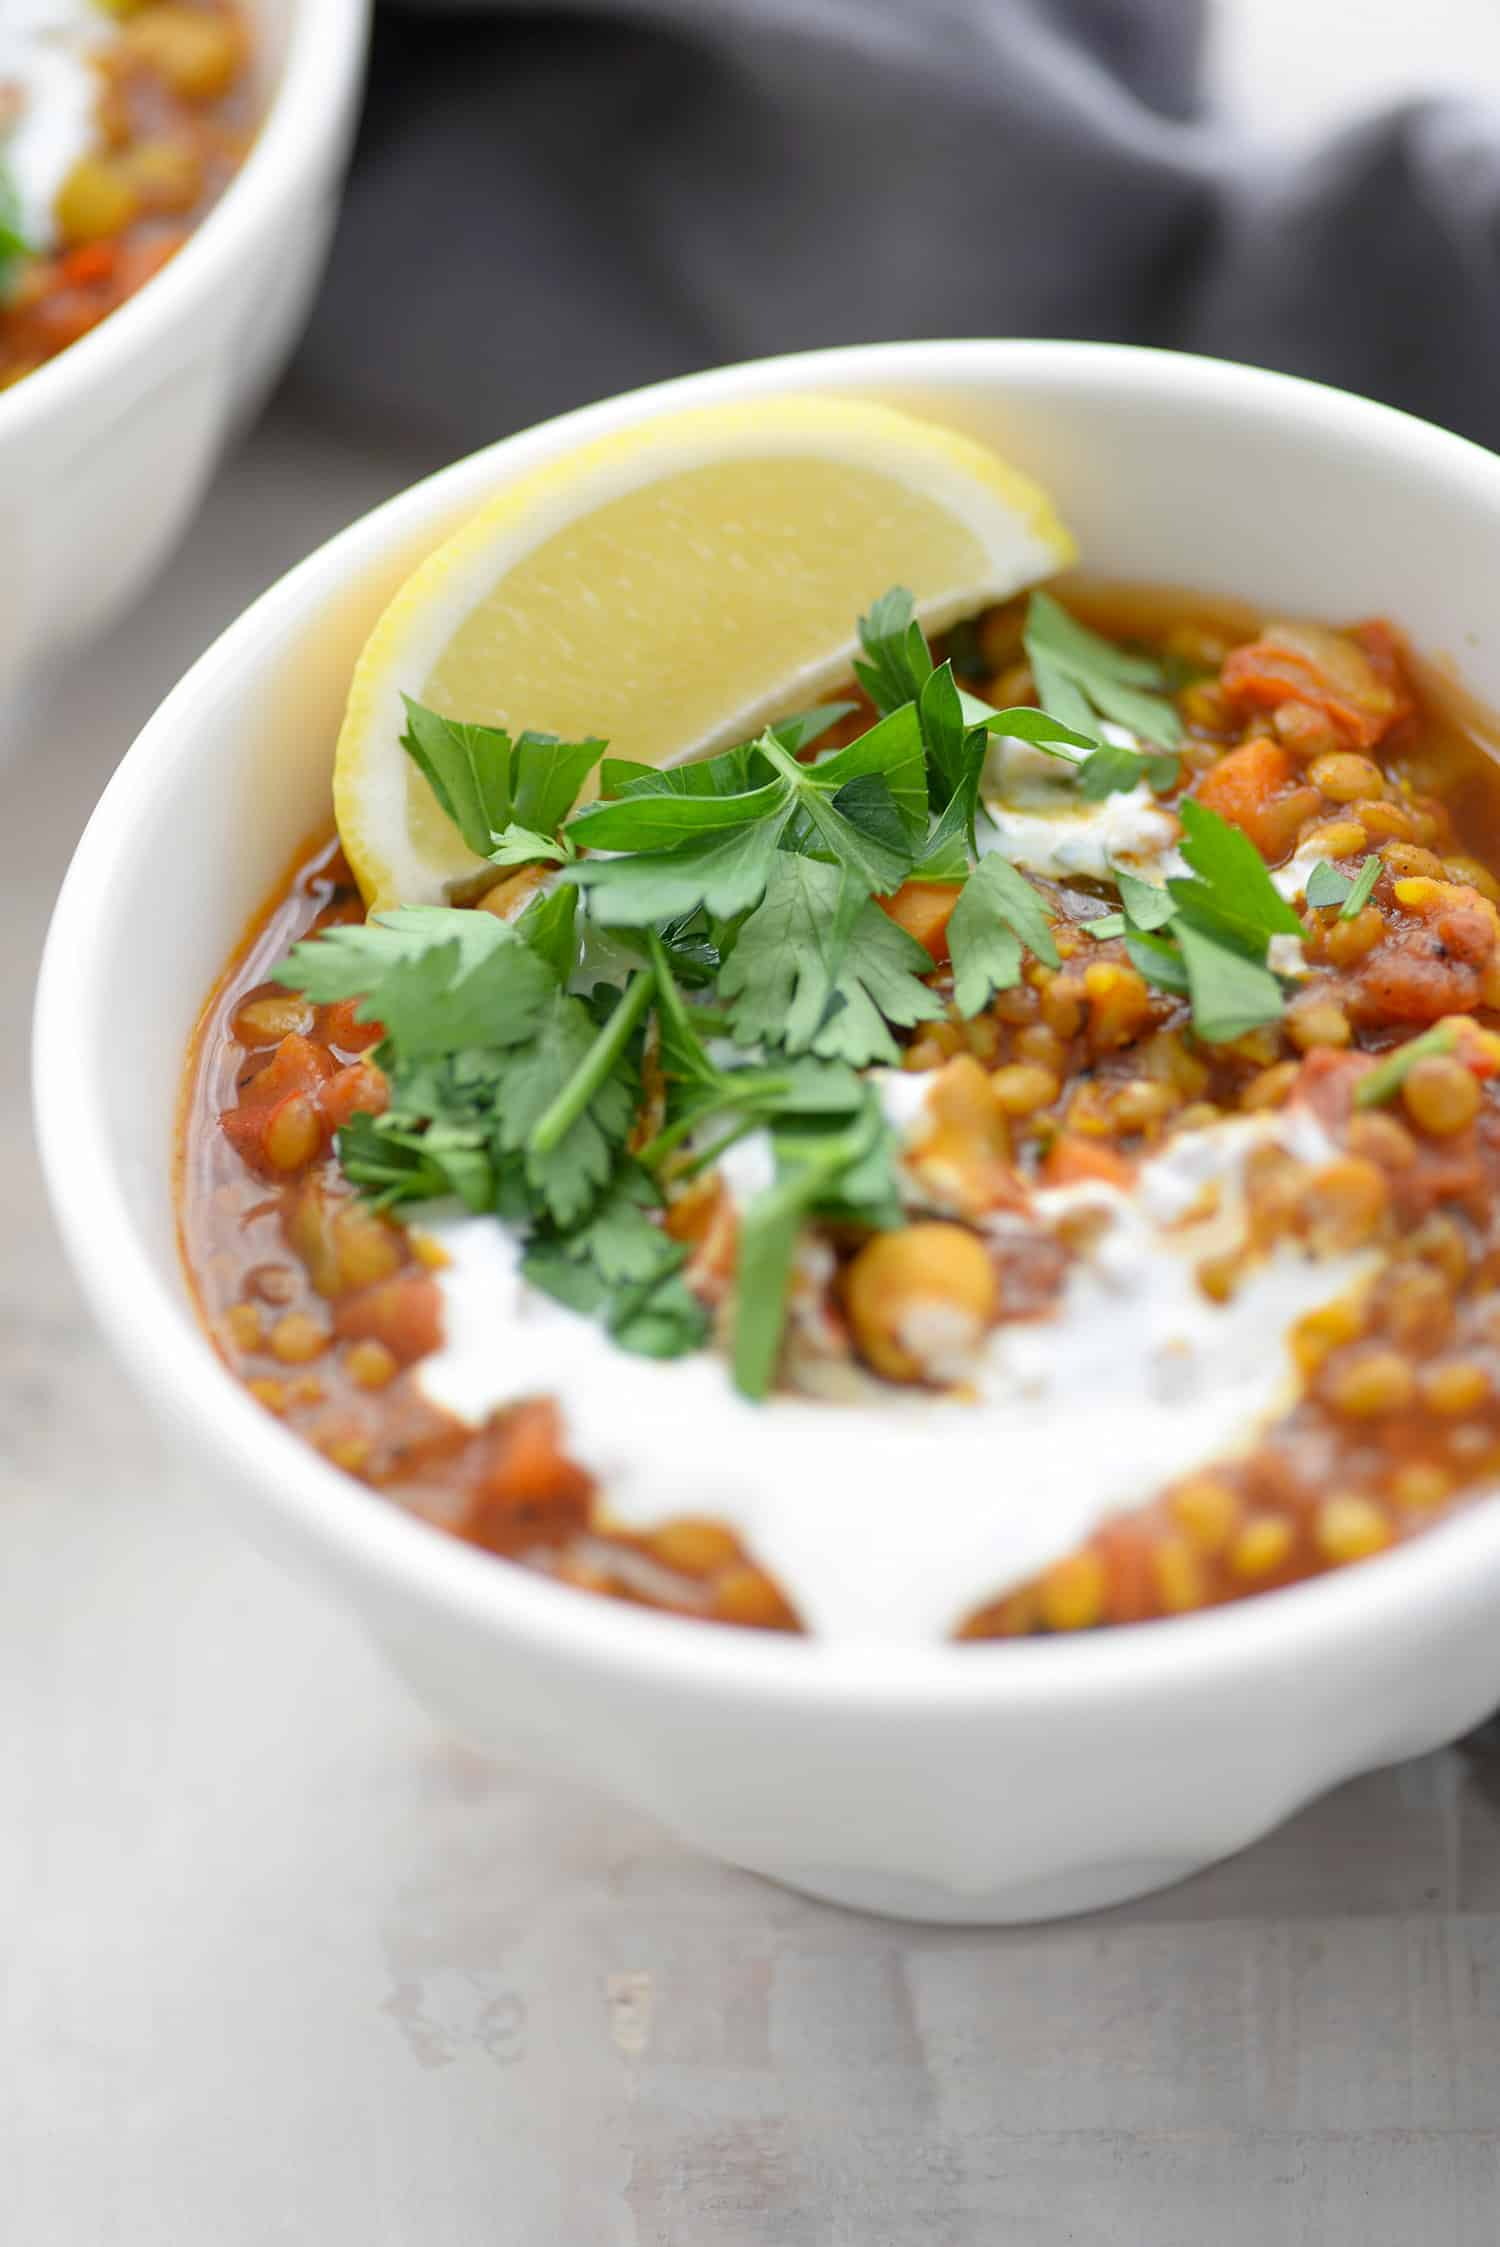 Moroccan Lentil and Chickpea Soup! If you like healthy, spicy food- you've gotta try this one out. #vegan #glutenfree #vegetarian #soup #dinner | www.delishknowledge.com